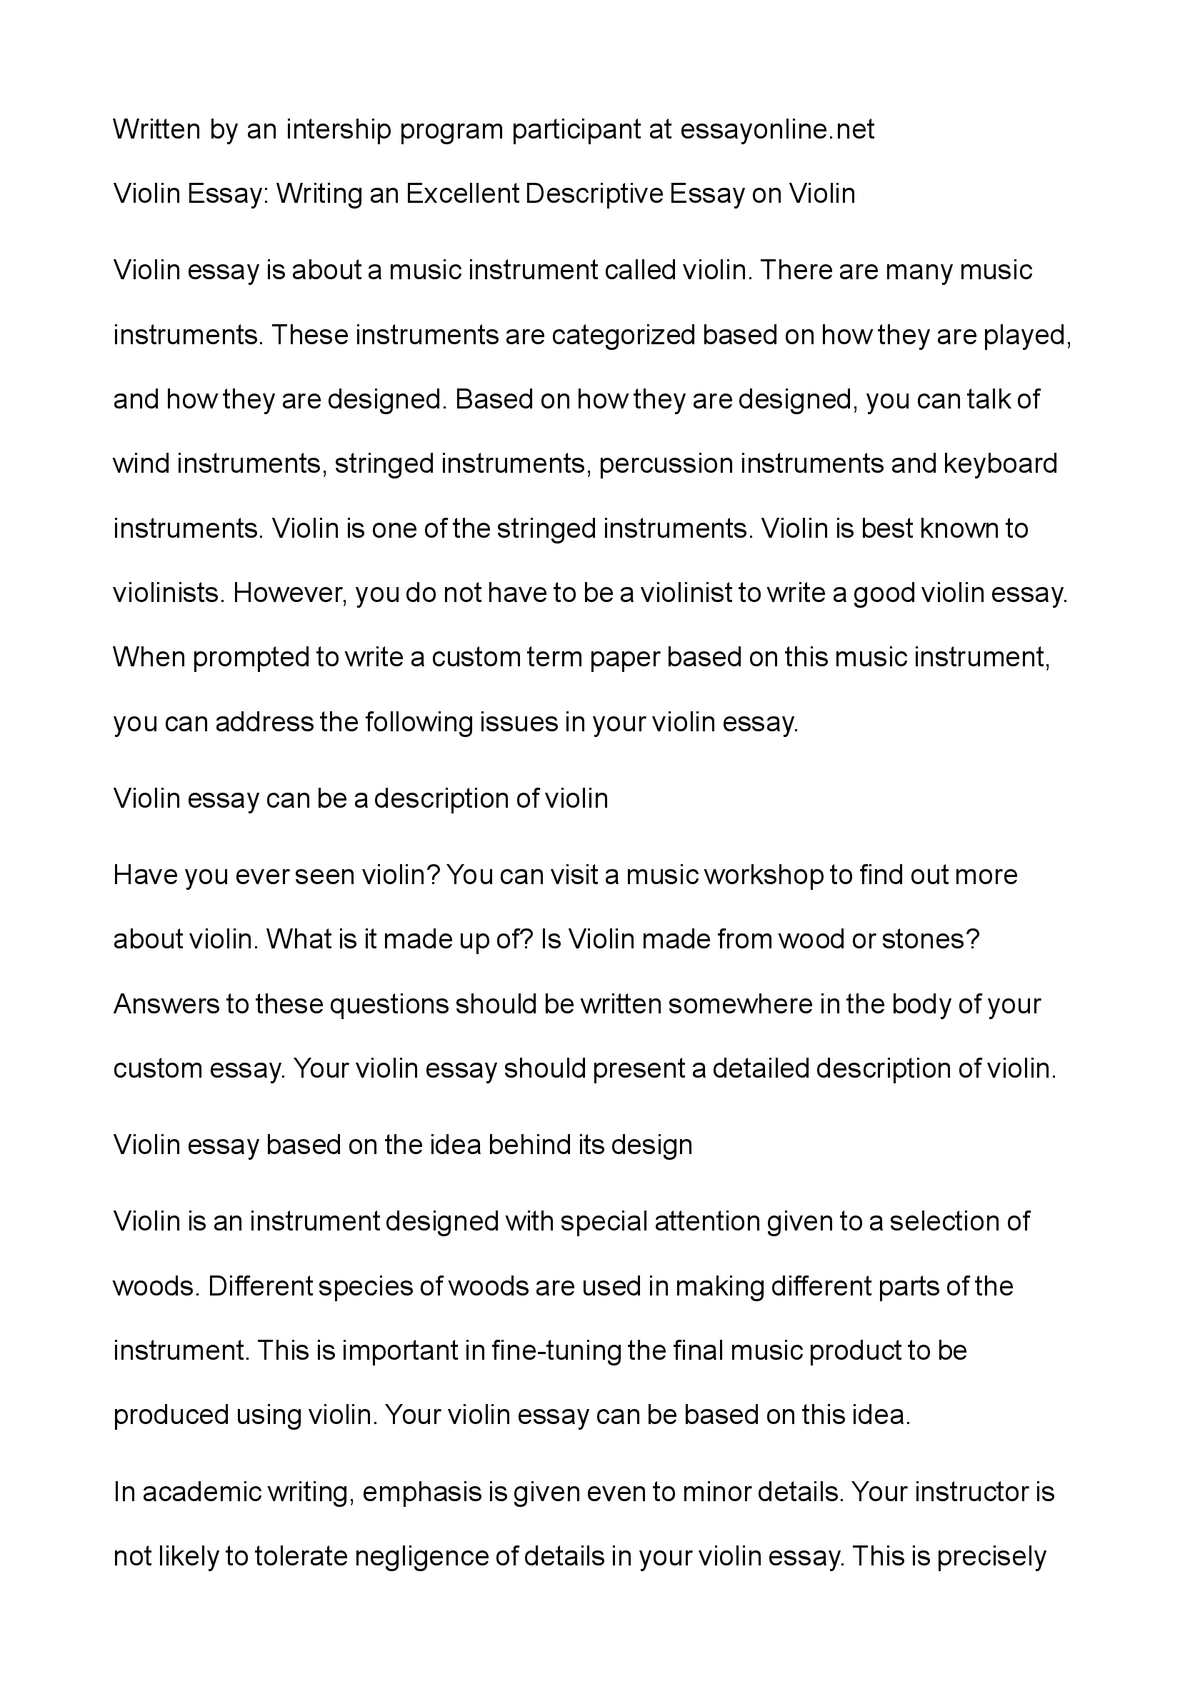 Buy custom masters essay on shakespeare Tina Shawal Photography